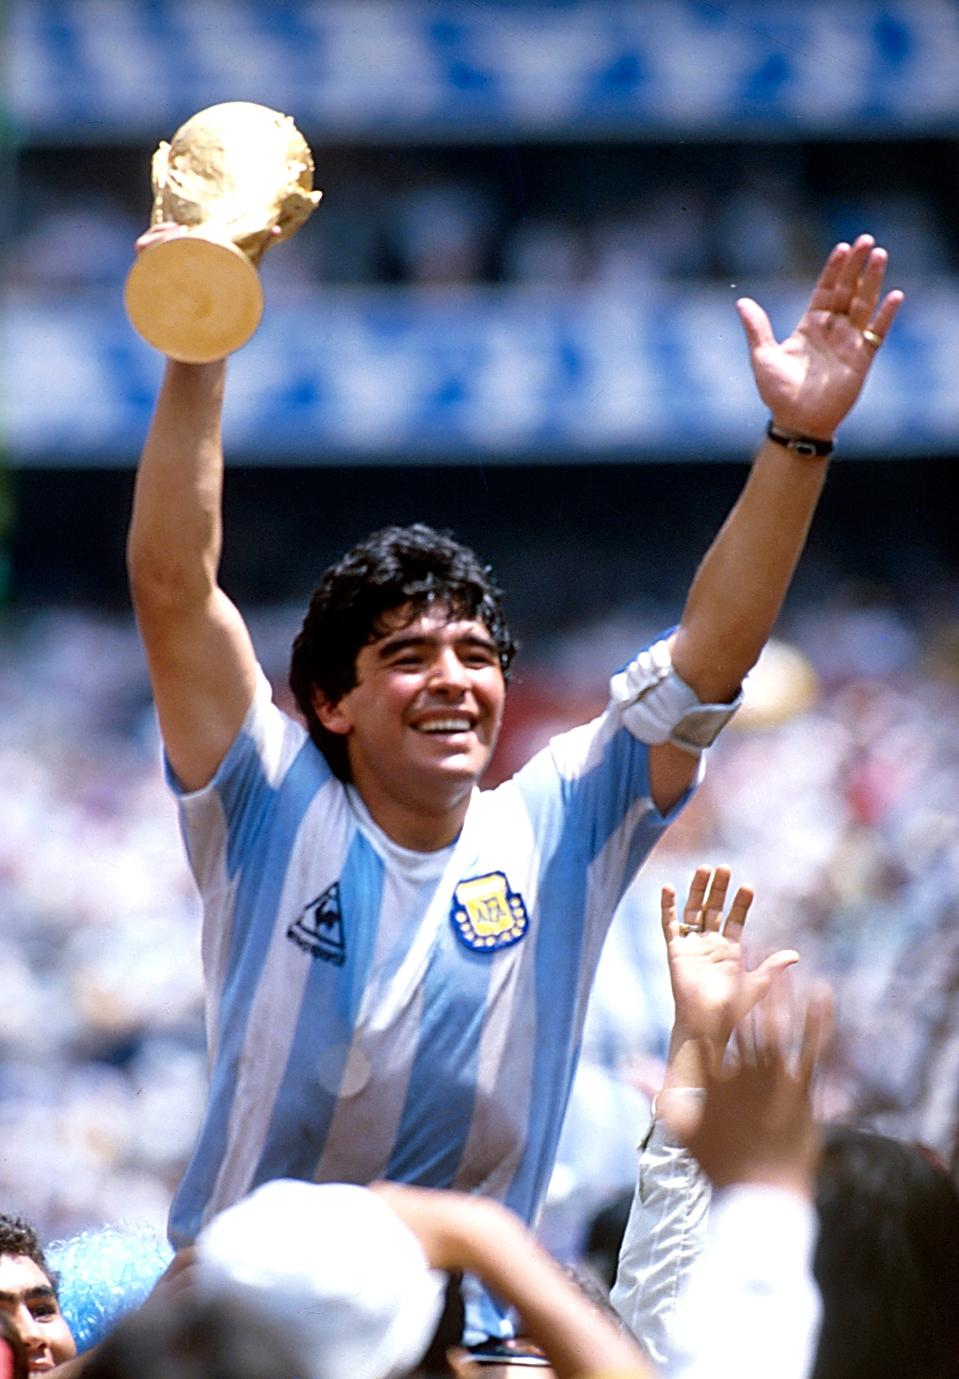 Diego Maradona, One The Greatest Soccer Players Of All-Time, Dies At Age 60